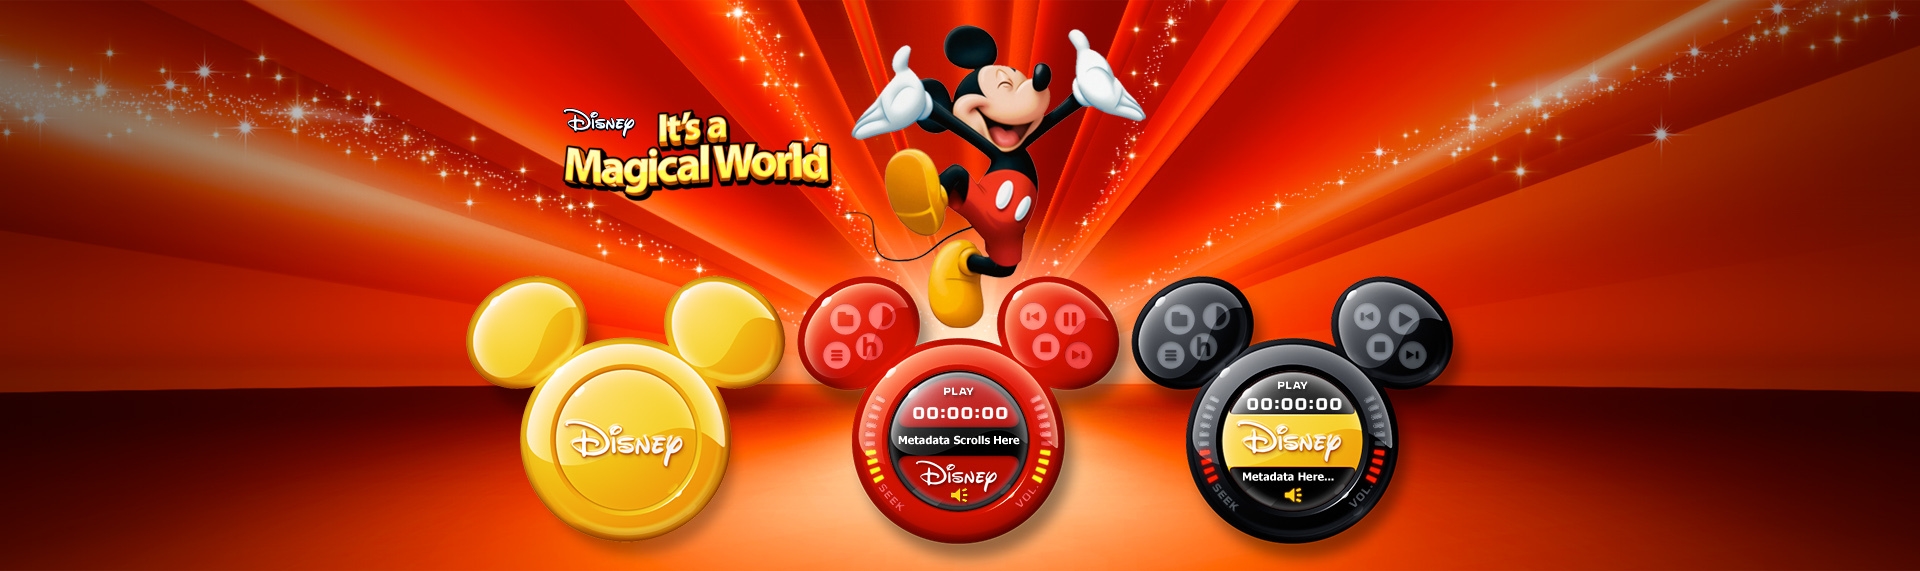 Disneys Its a Magical World Audio Remote  Client: The Walt Disney Company  As part of the Hyperdesk Disney It's a Magical World Windows desktop theme, the magical Mickey Mouse Audio Remote delighted users of all ages with its high-gloss style, seven vibrant colors and Mickey Mouse's iconic shape. The Mickey Mouse Yahoo! widget controlled Apple's iTunes and Microsoft's Windows Media Player as a remote control with a small desktop footprint.